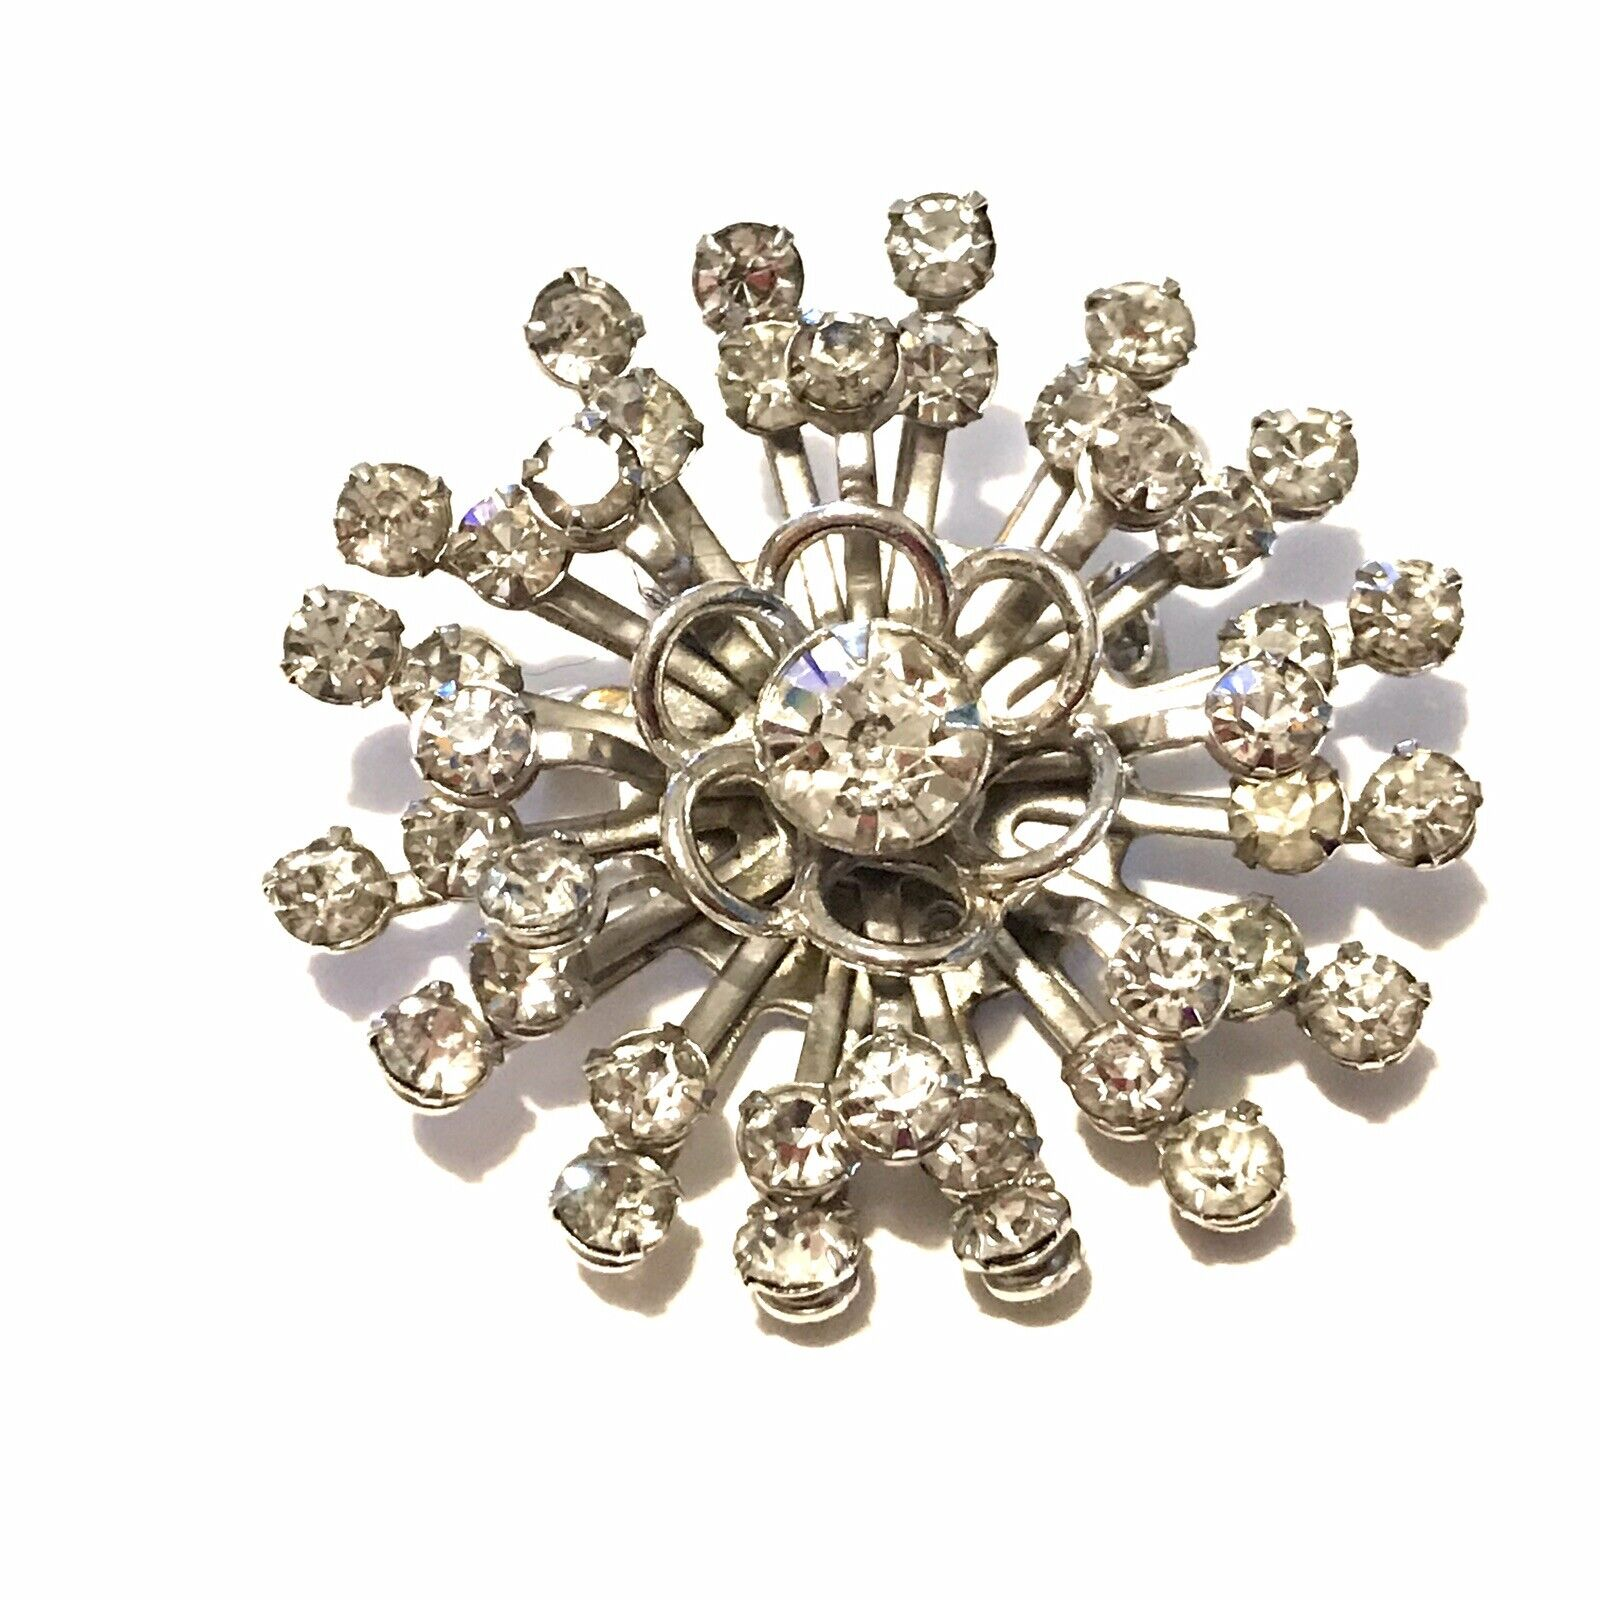 Vintage Silver Spiral Floral Motif with Center AB Crystal Rhinestone Pin Brooch